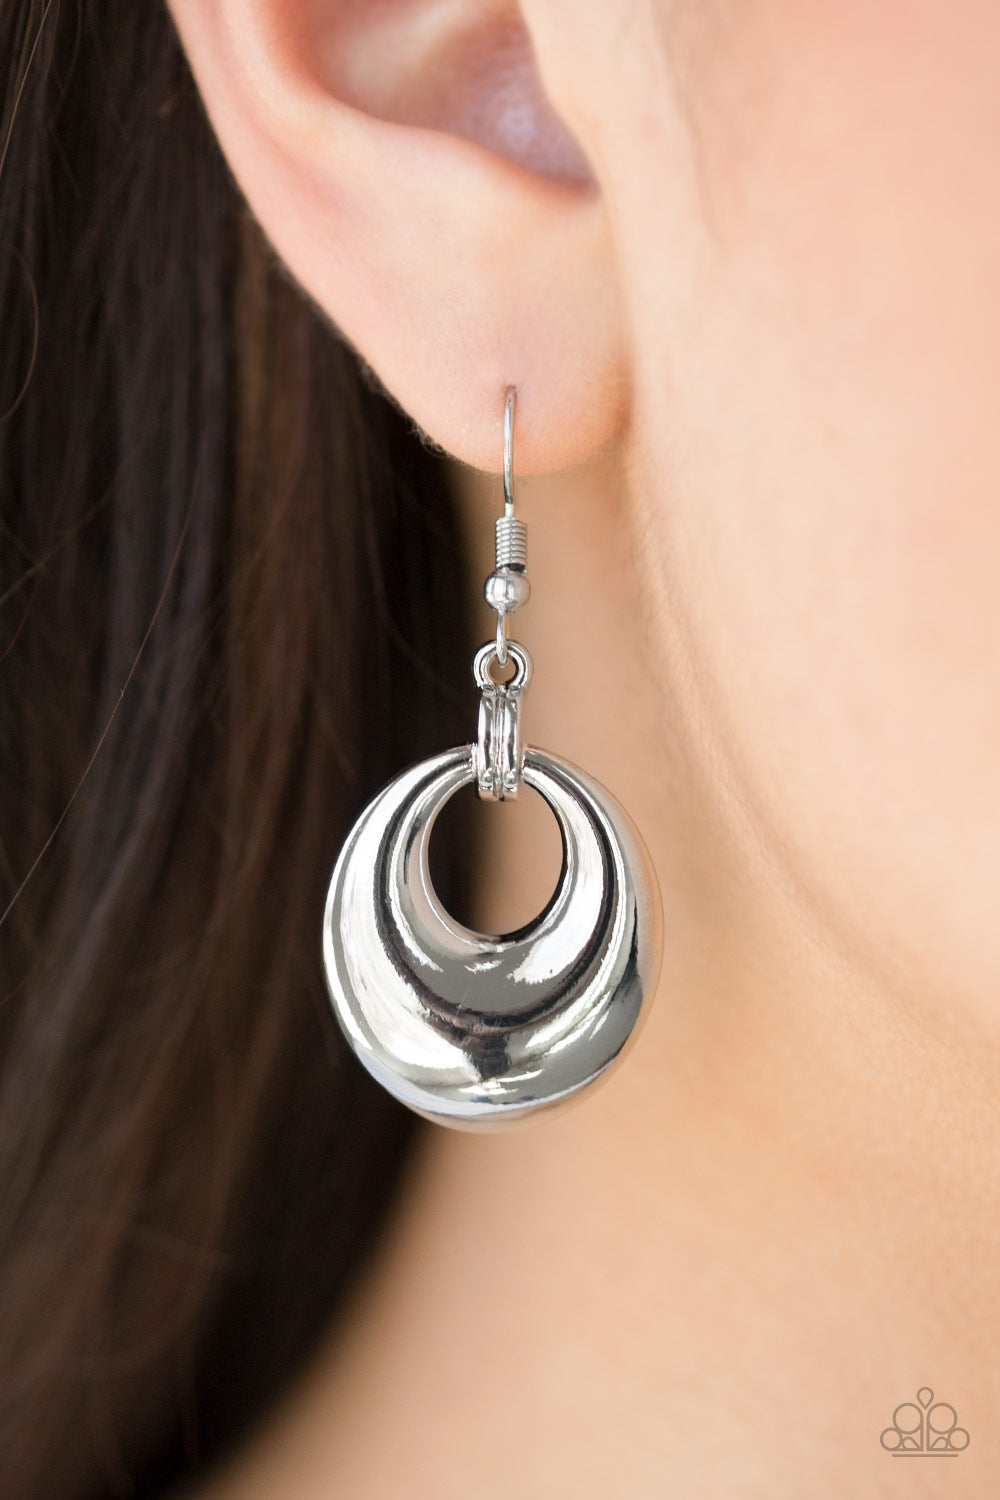 Brushed in a high-sheen finish, a silver frame swings from glistening silver fittings for a casual look. Earring attaches to a standard fishhook fitting.  Sold as one pair of earrings.  Always nickel and lead free